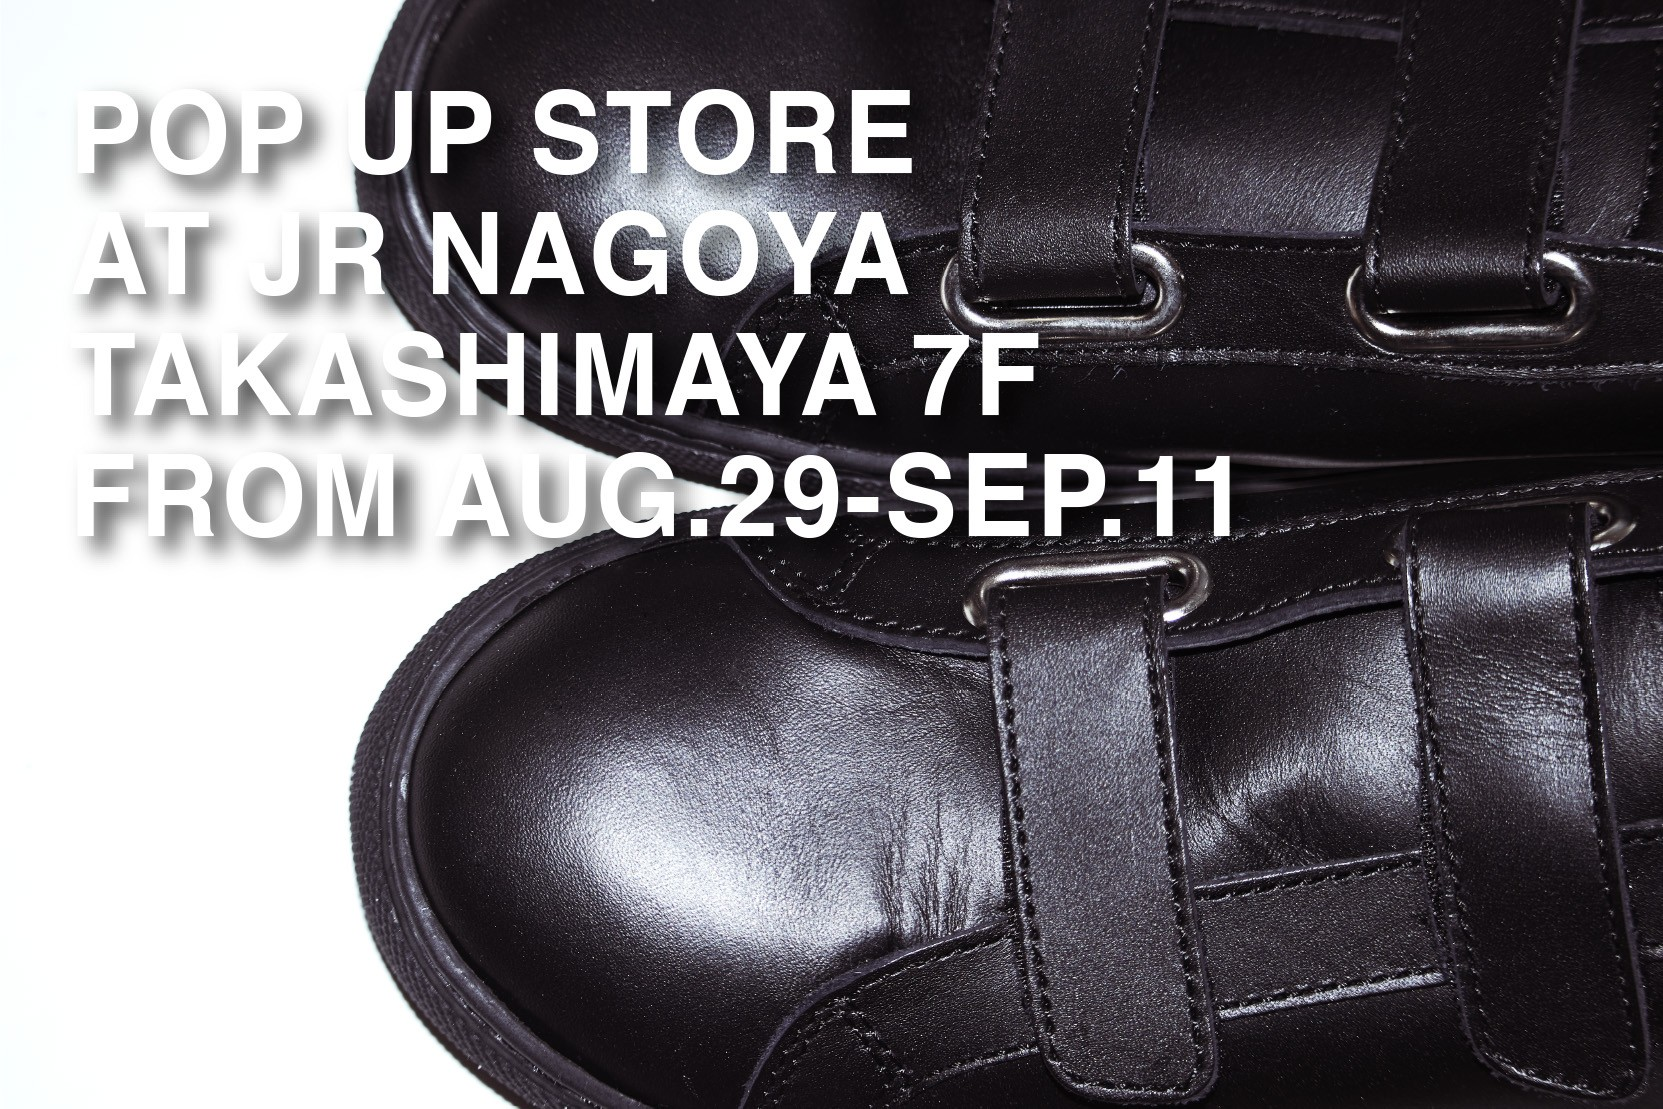 JR NAGOYA TAKASHIMAYA POP UP STORE FROM Aug.29